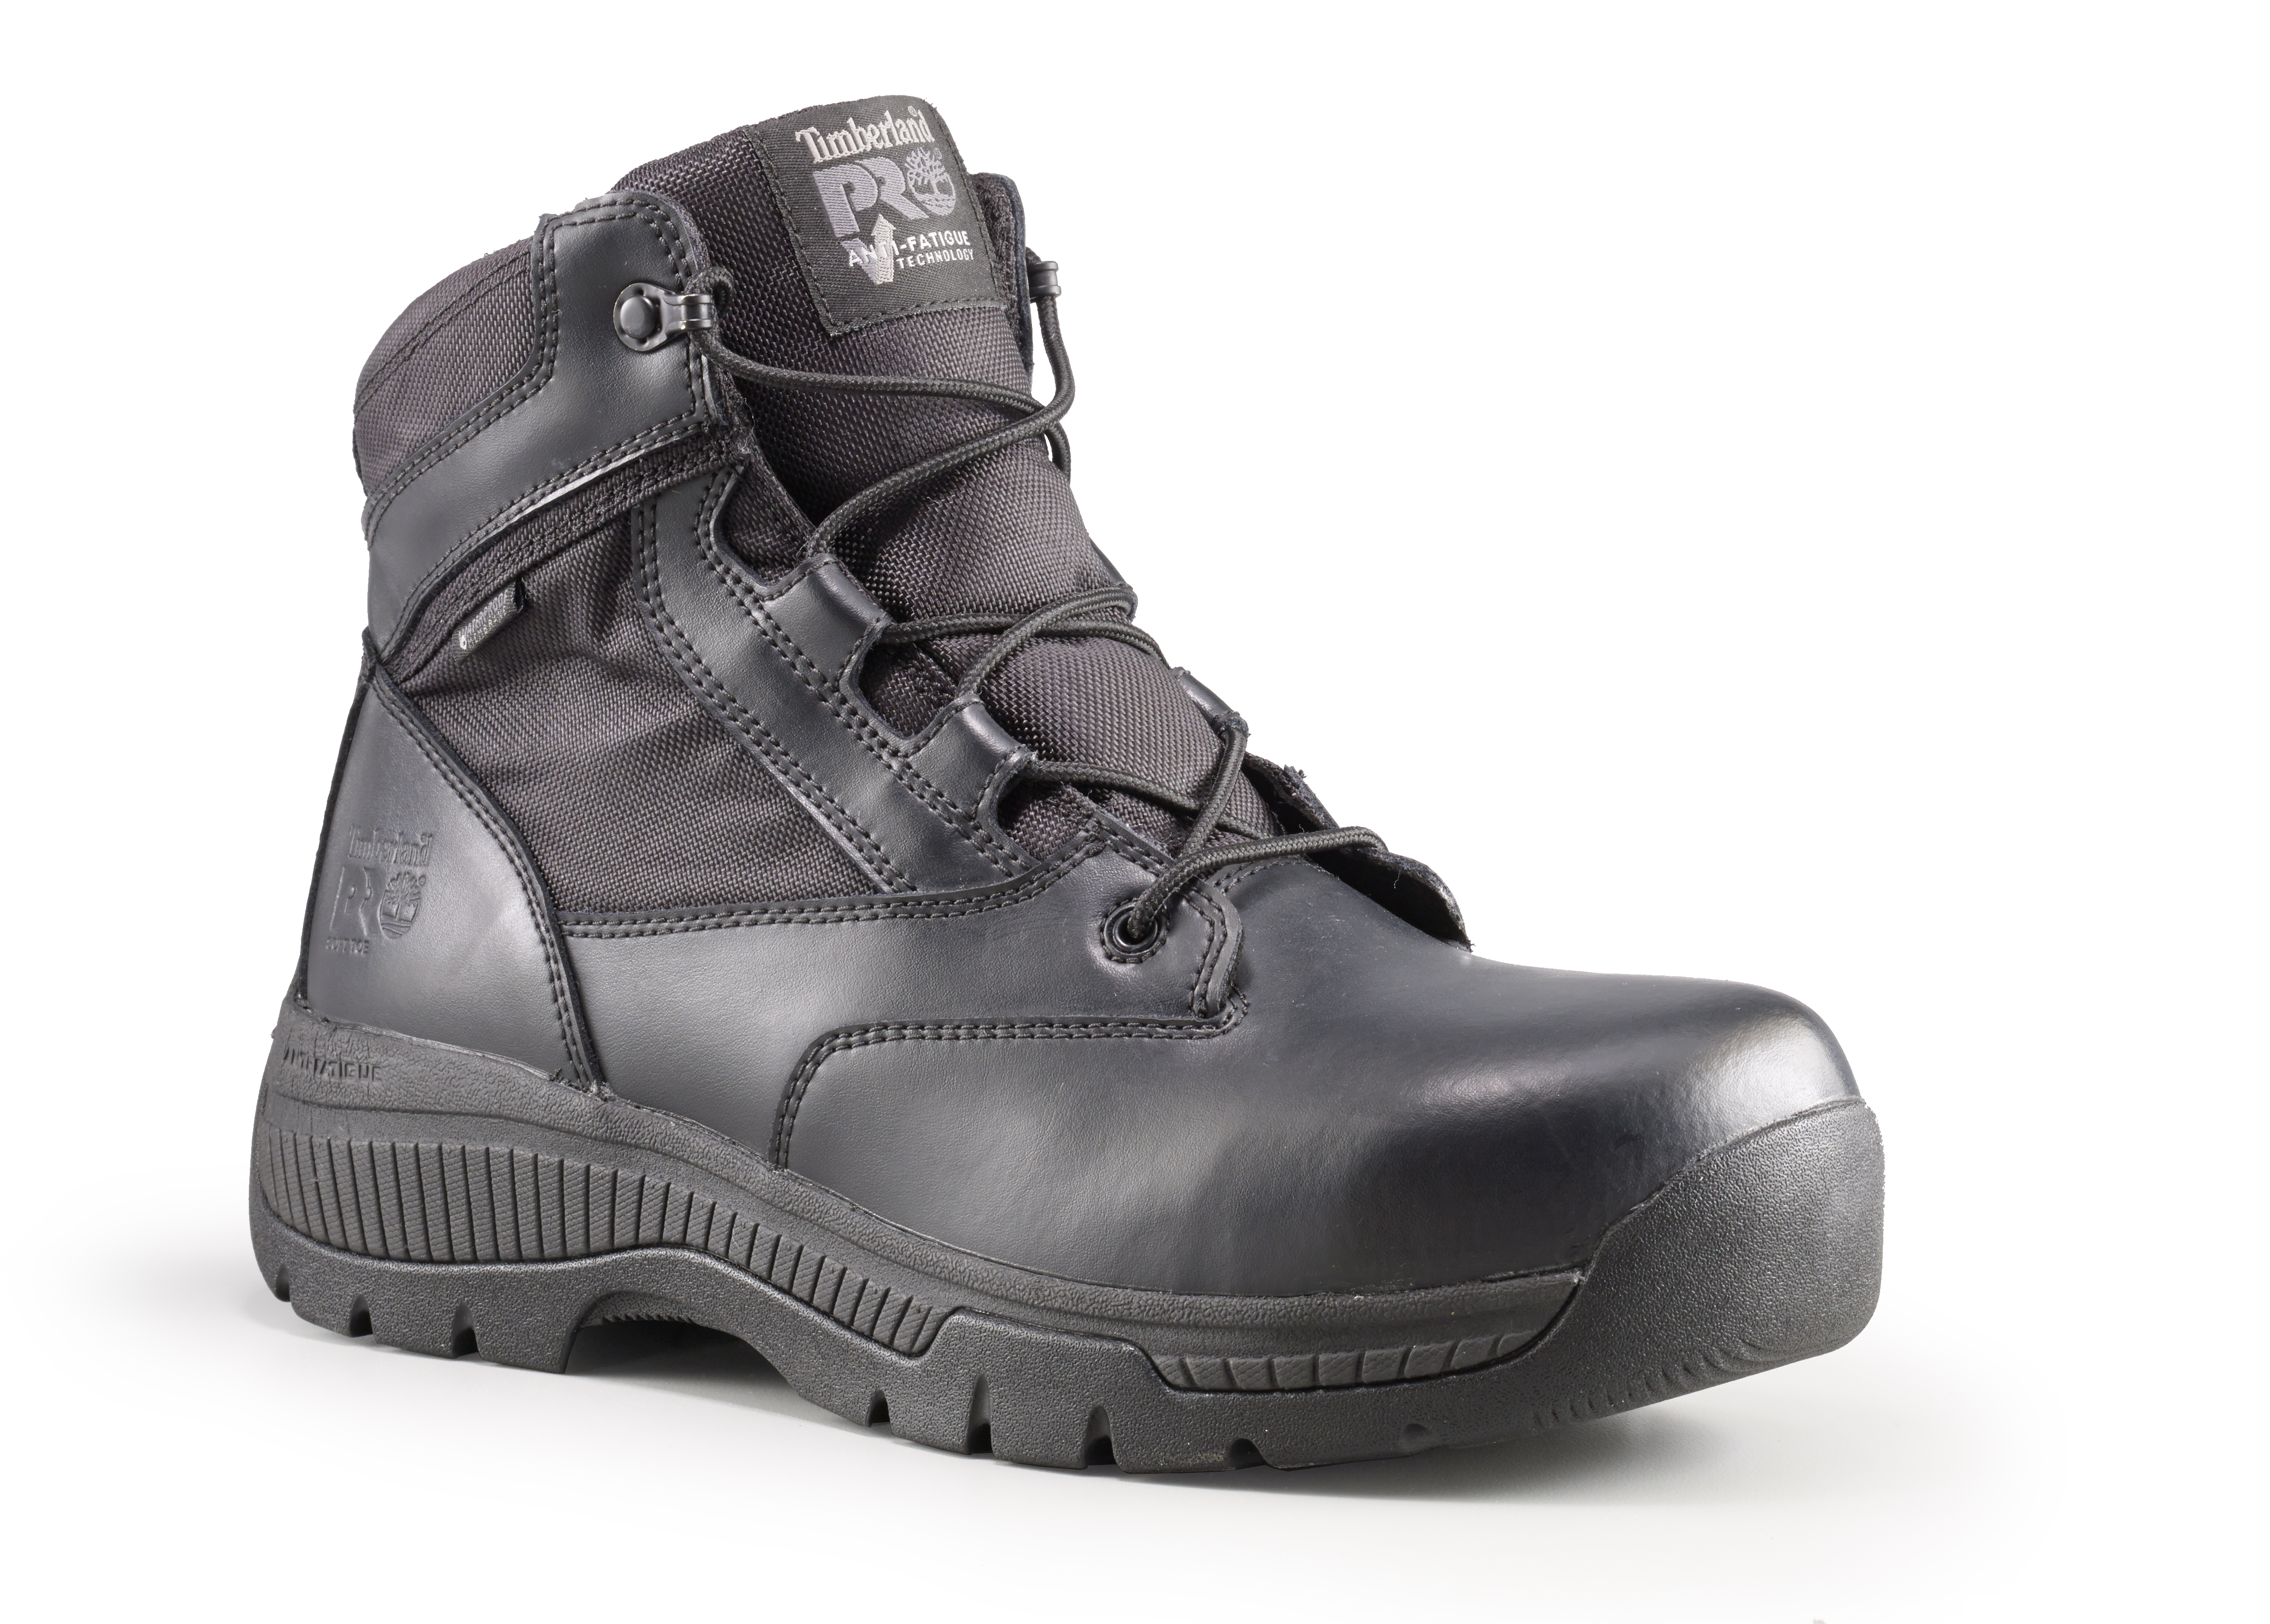 The Timberland Pro Valor series is built specifically to provide law enforcement professionals...